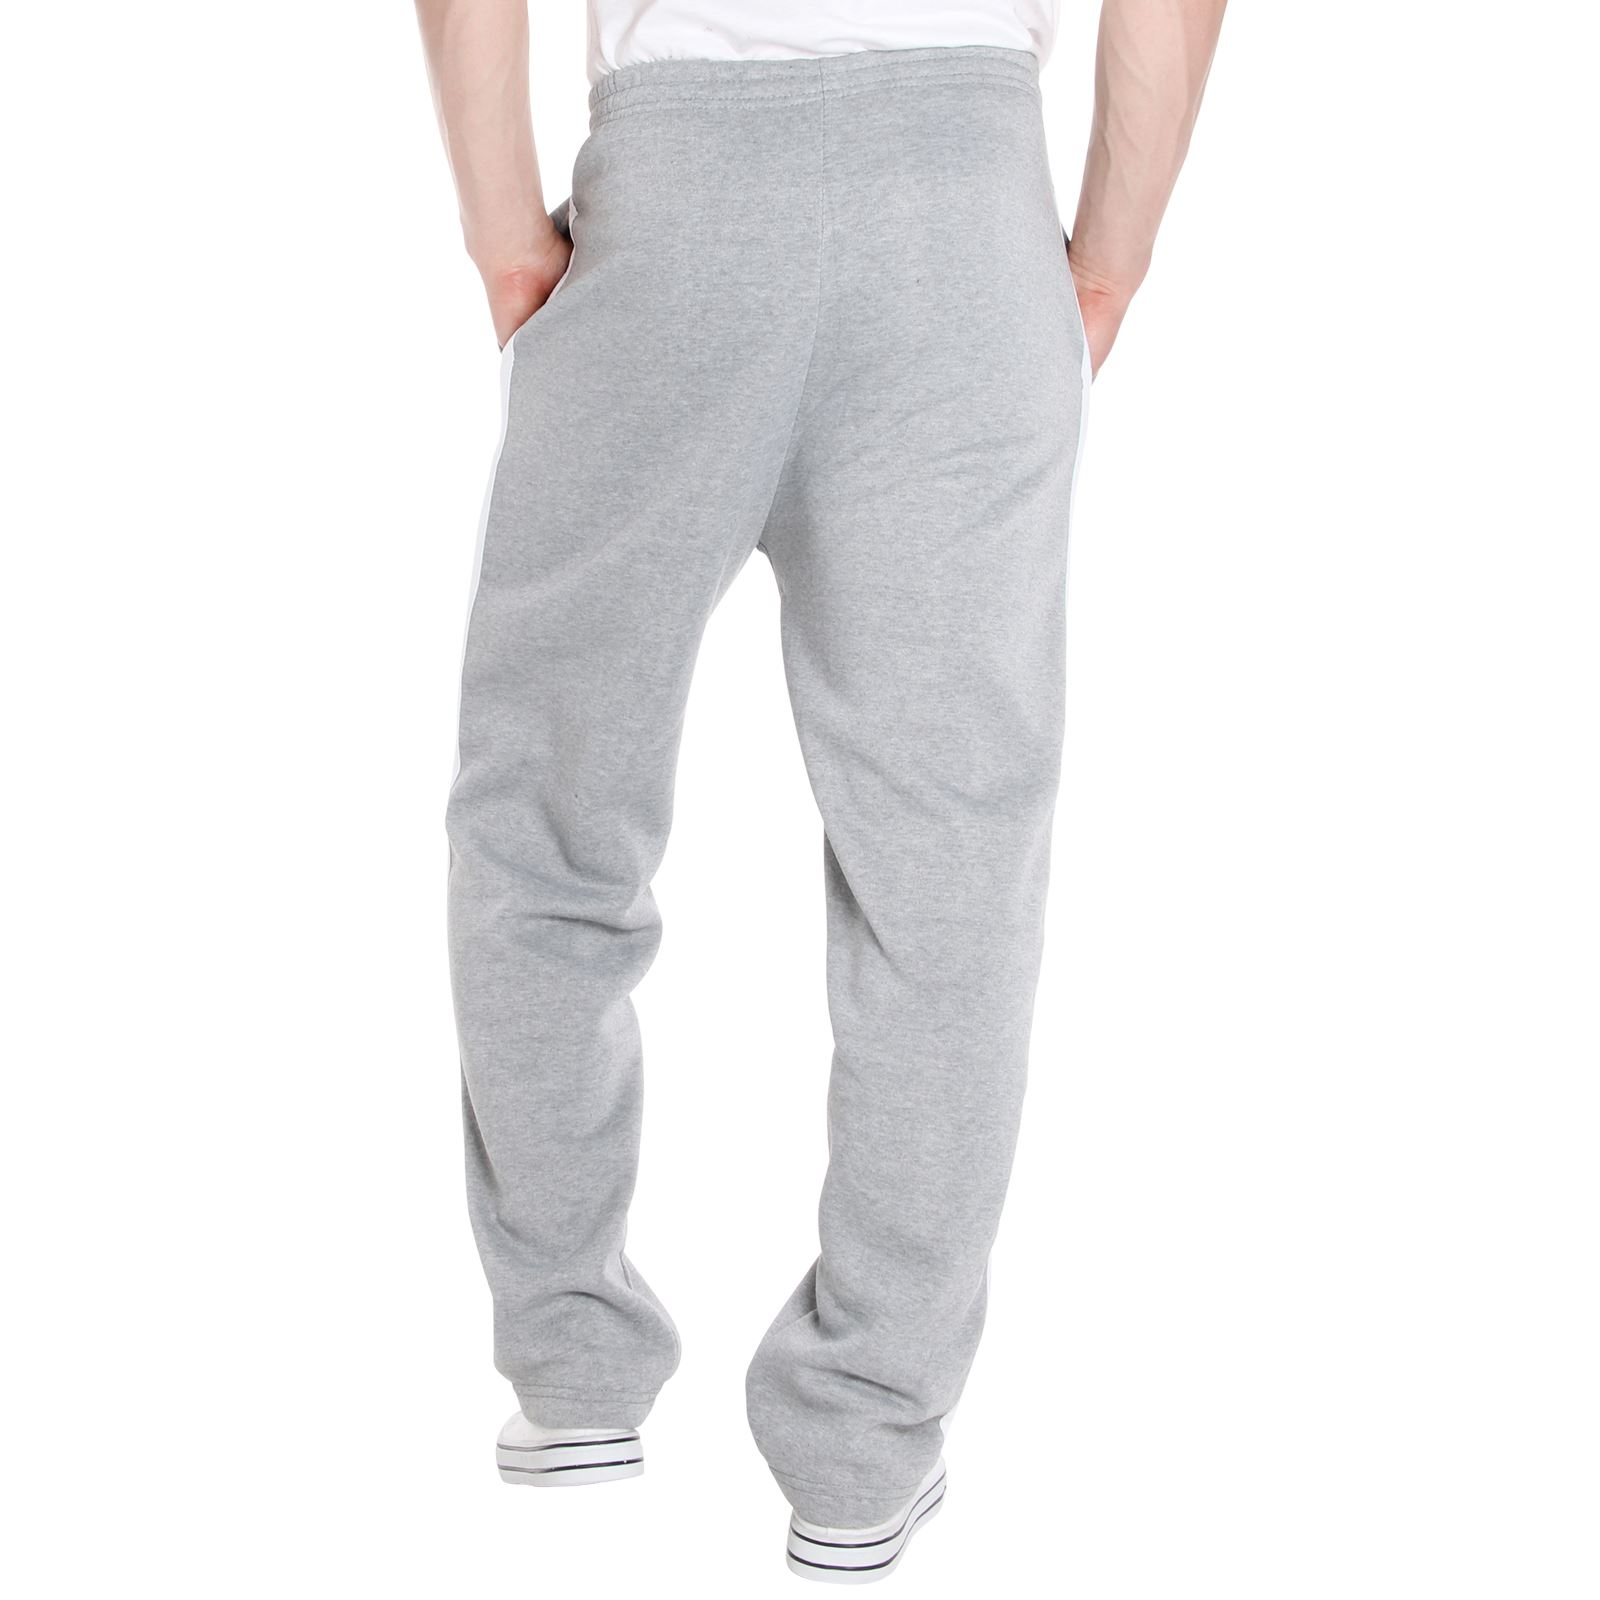 Mens-Tracksuit-Bottoms-Striped-Joggers-Jogging-Trousers-Fleece-Pants-Casual-Work thumbnail 27